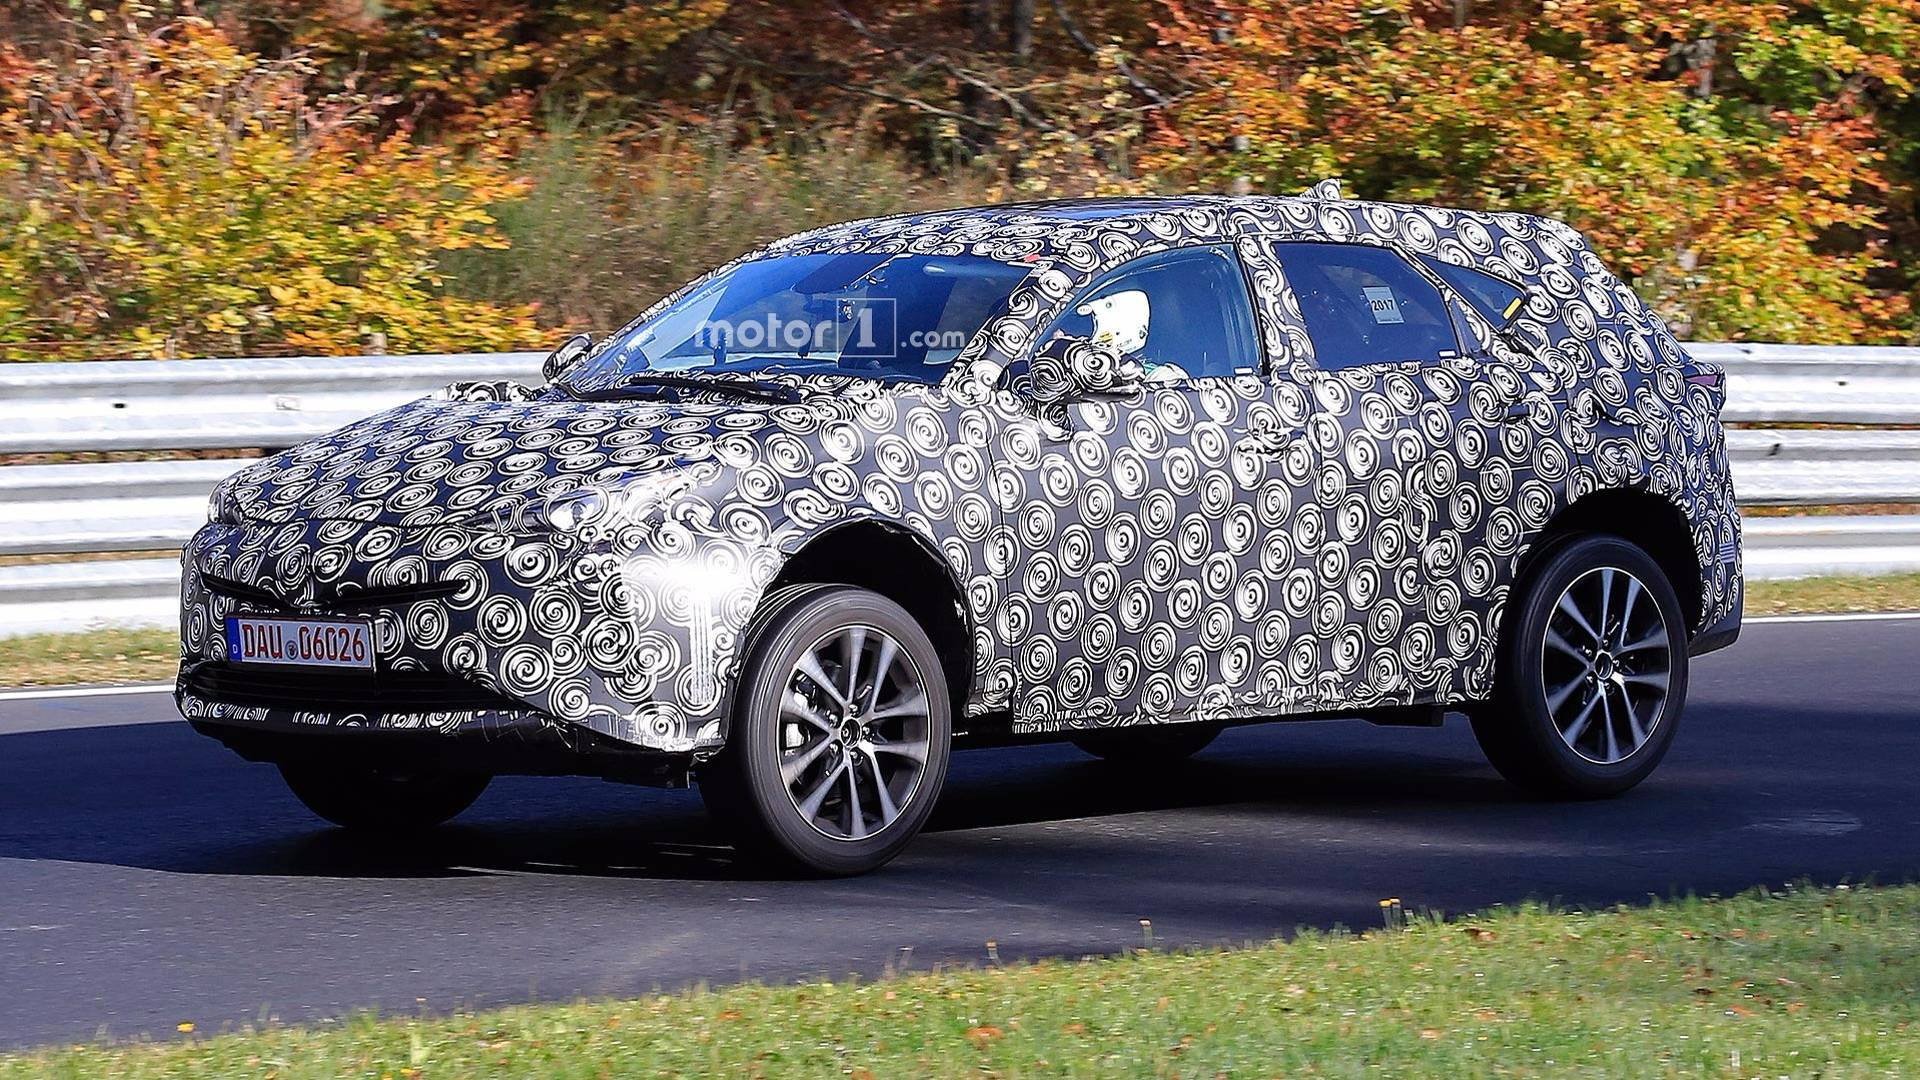 Spy Shots Toyota Prius Concept and Review